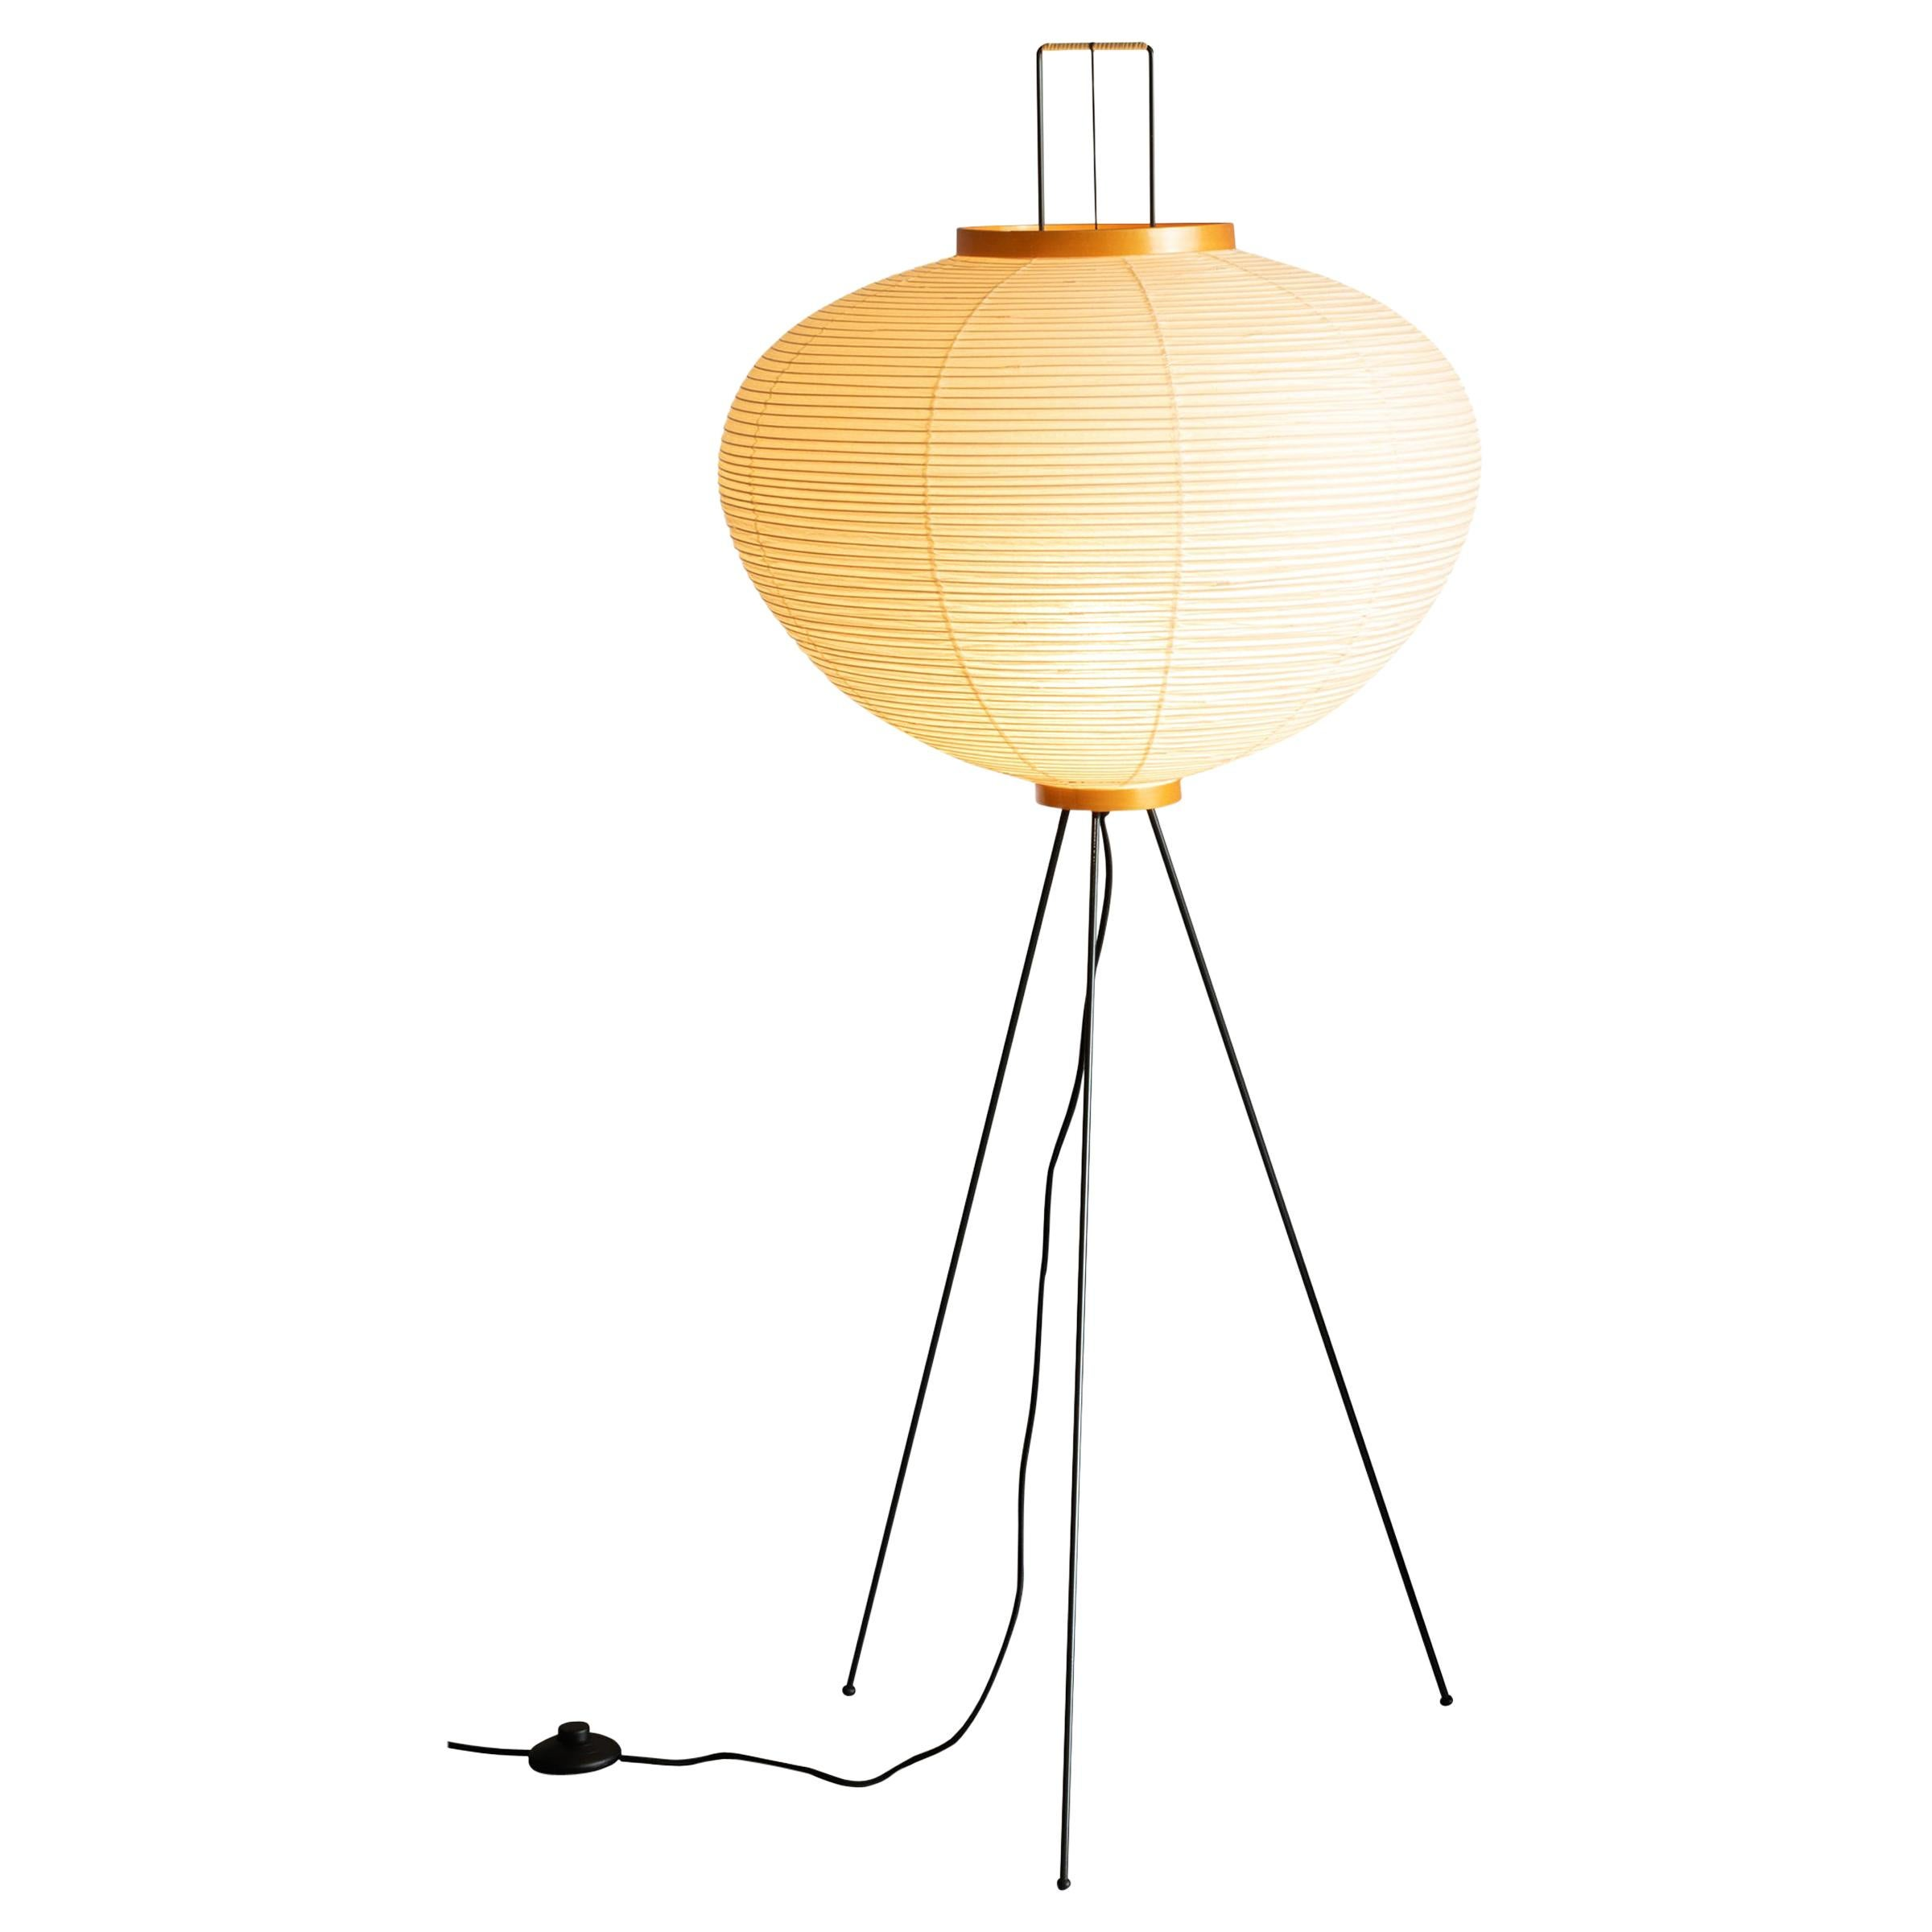 Isamu Noguchi Akari 10A floor lamp in Washi Paper and Bamboo by Ozeki